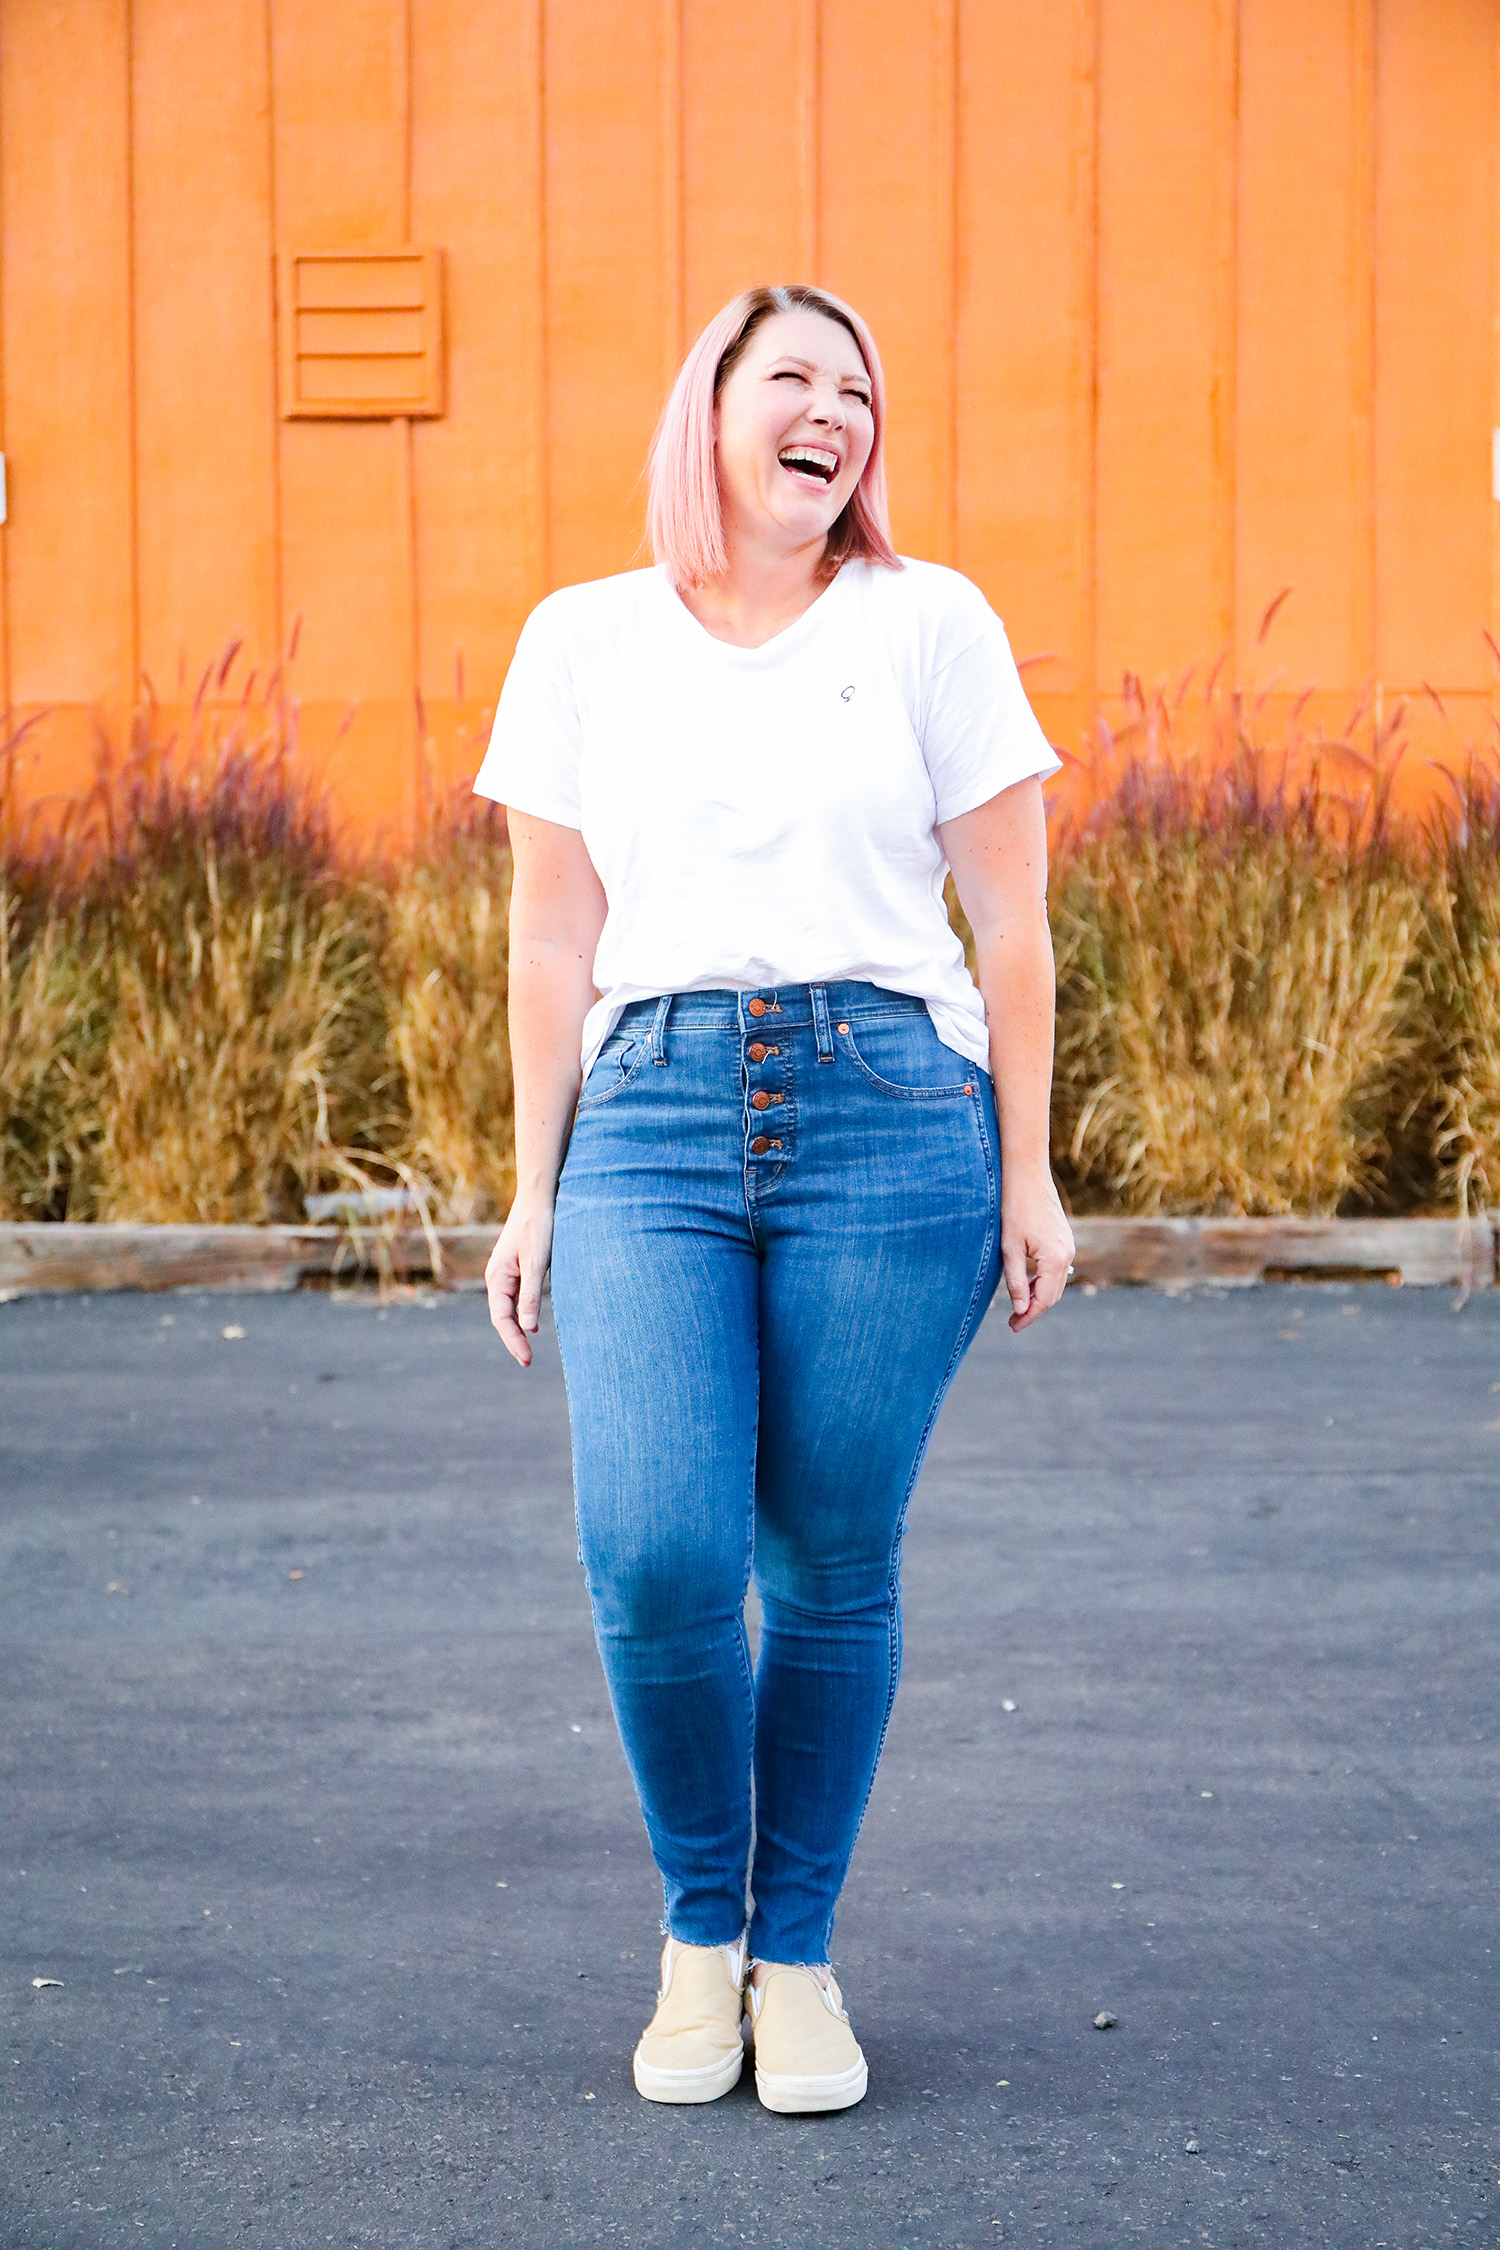 Looking for the BEST light blue jeans for a pear shaped body? Let's talk about the best light denim and what to wear with light blue jeans!